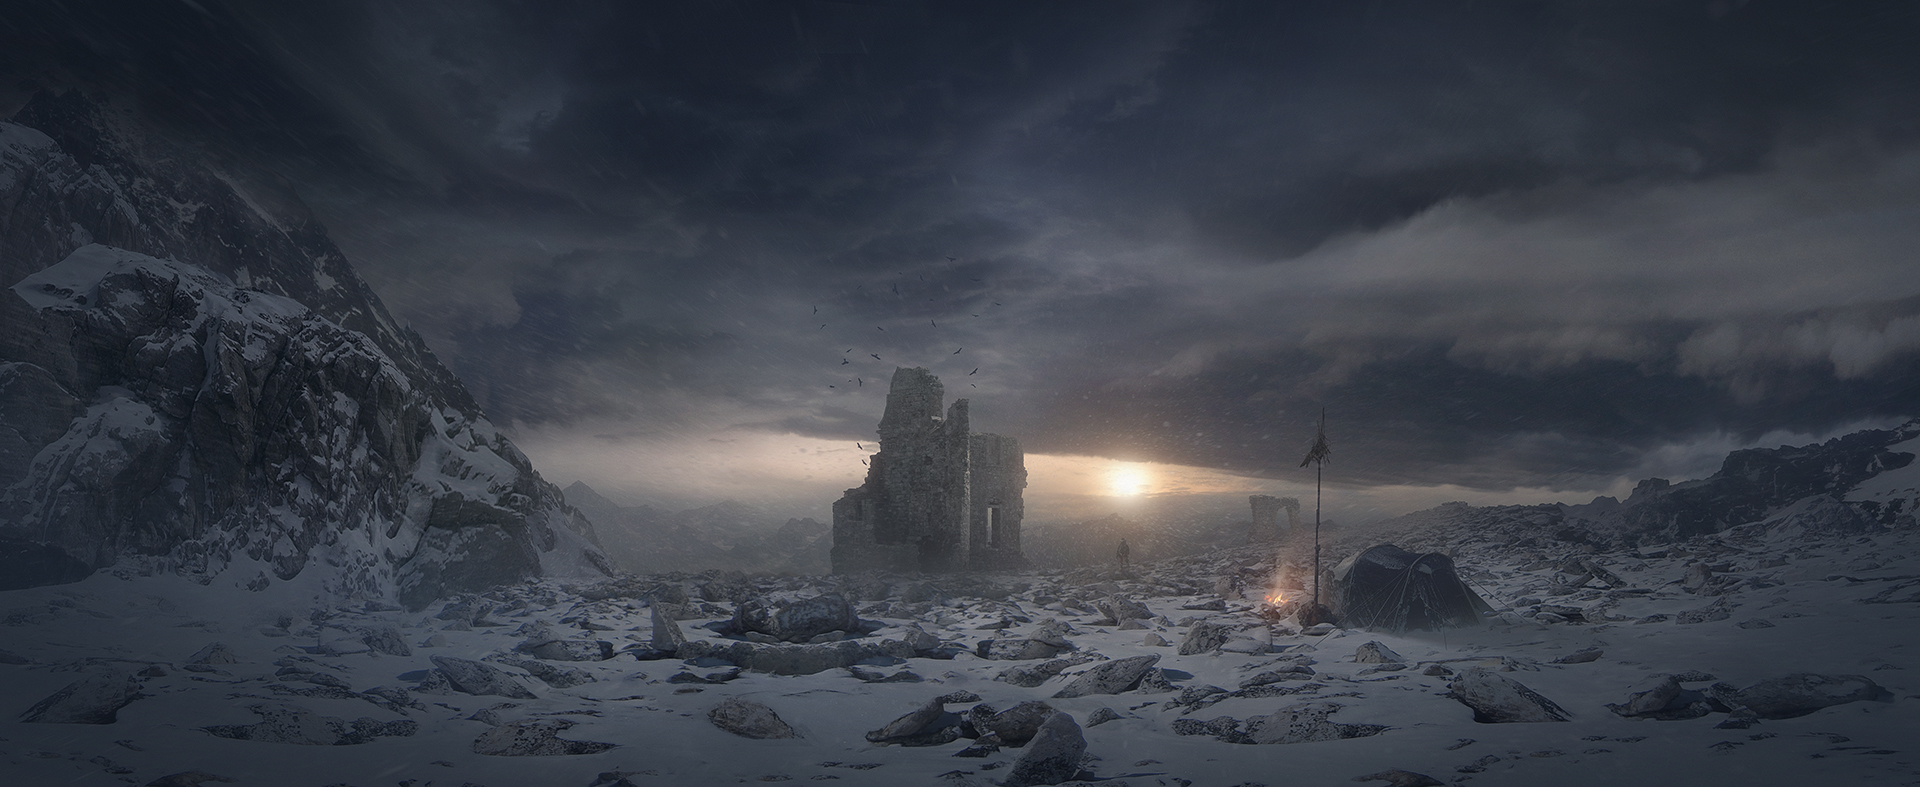 Jessica rossier concept art world for Matte painting